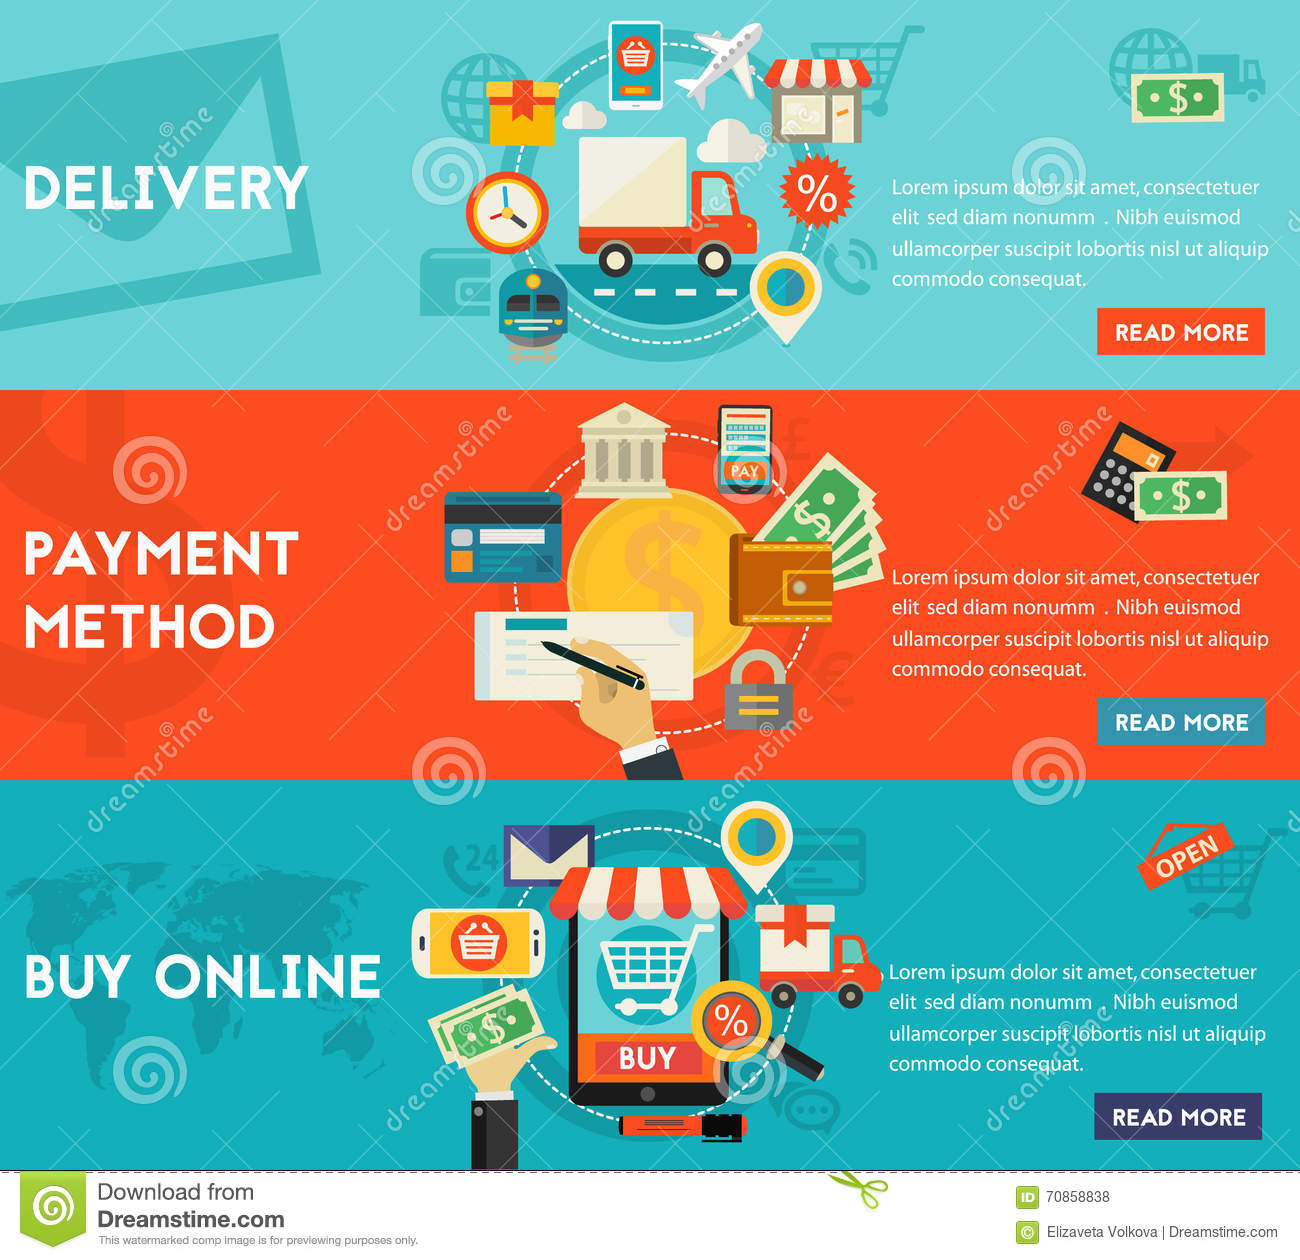 Online Shopping Mode Of Payment Buy Online Payment Methods And Delivery Concept Stock